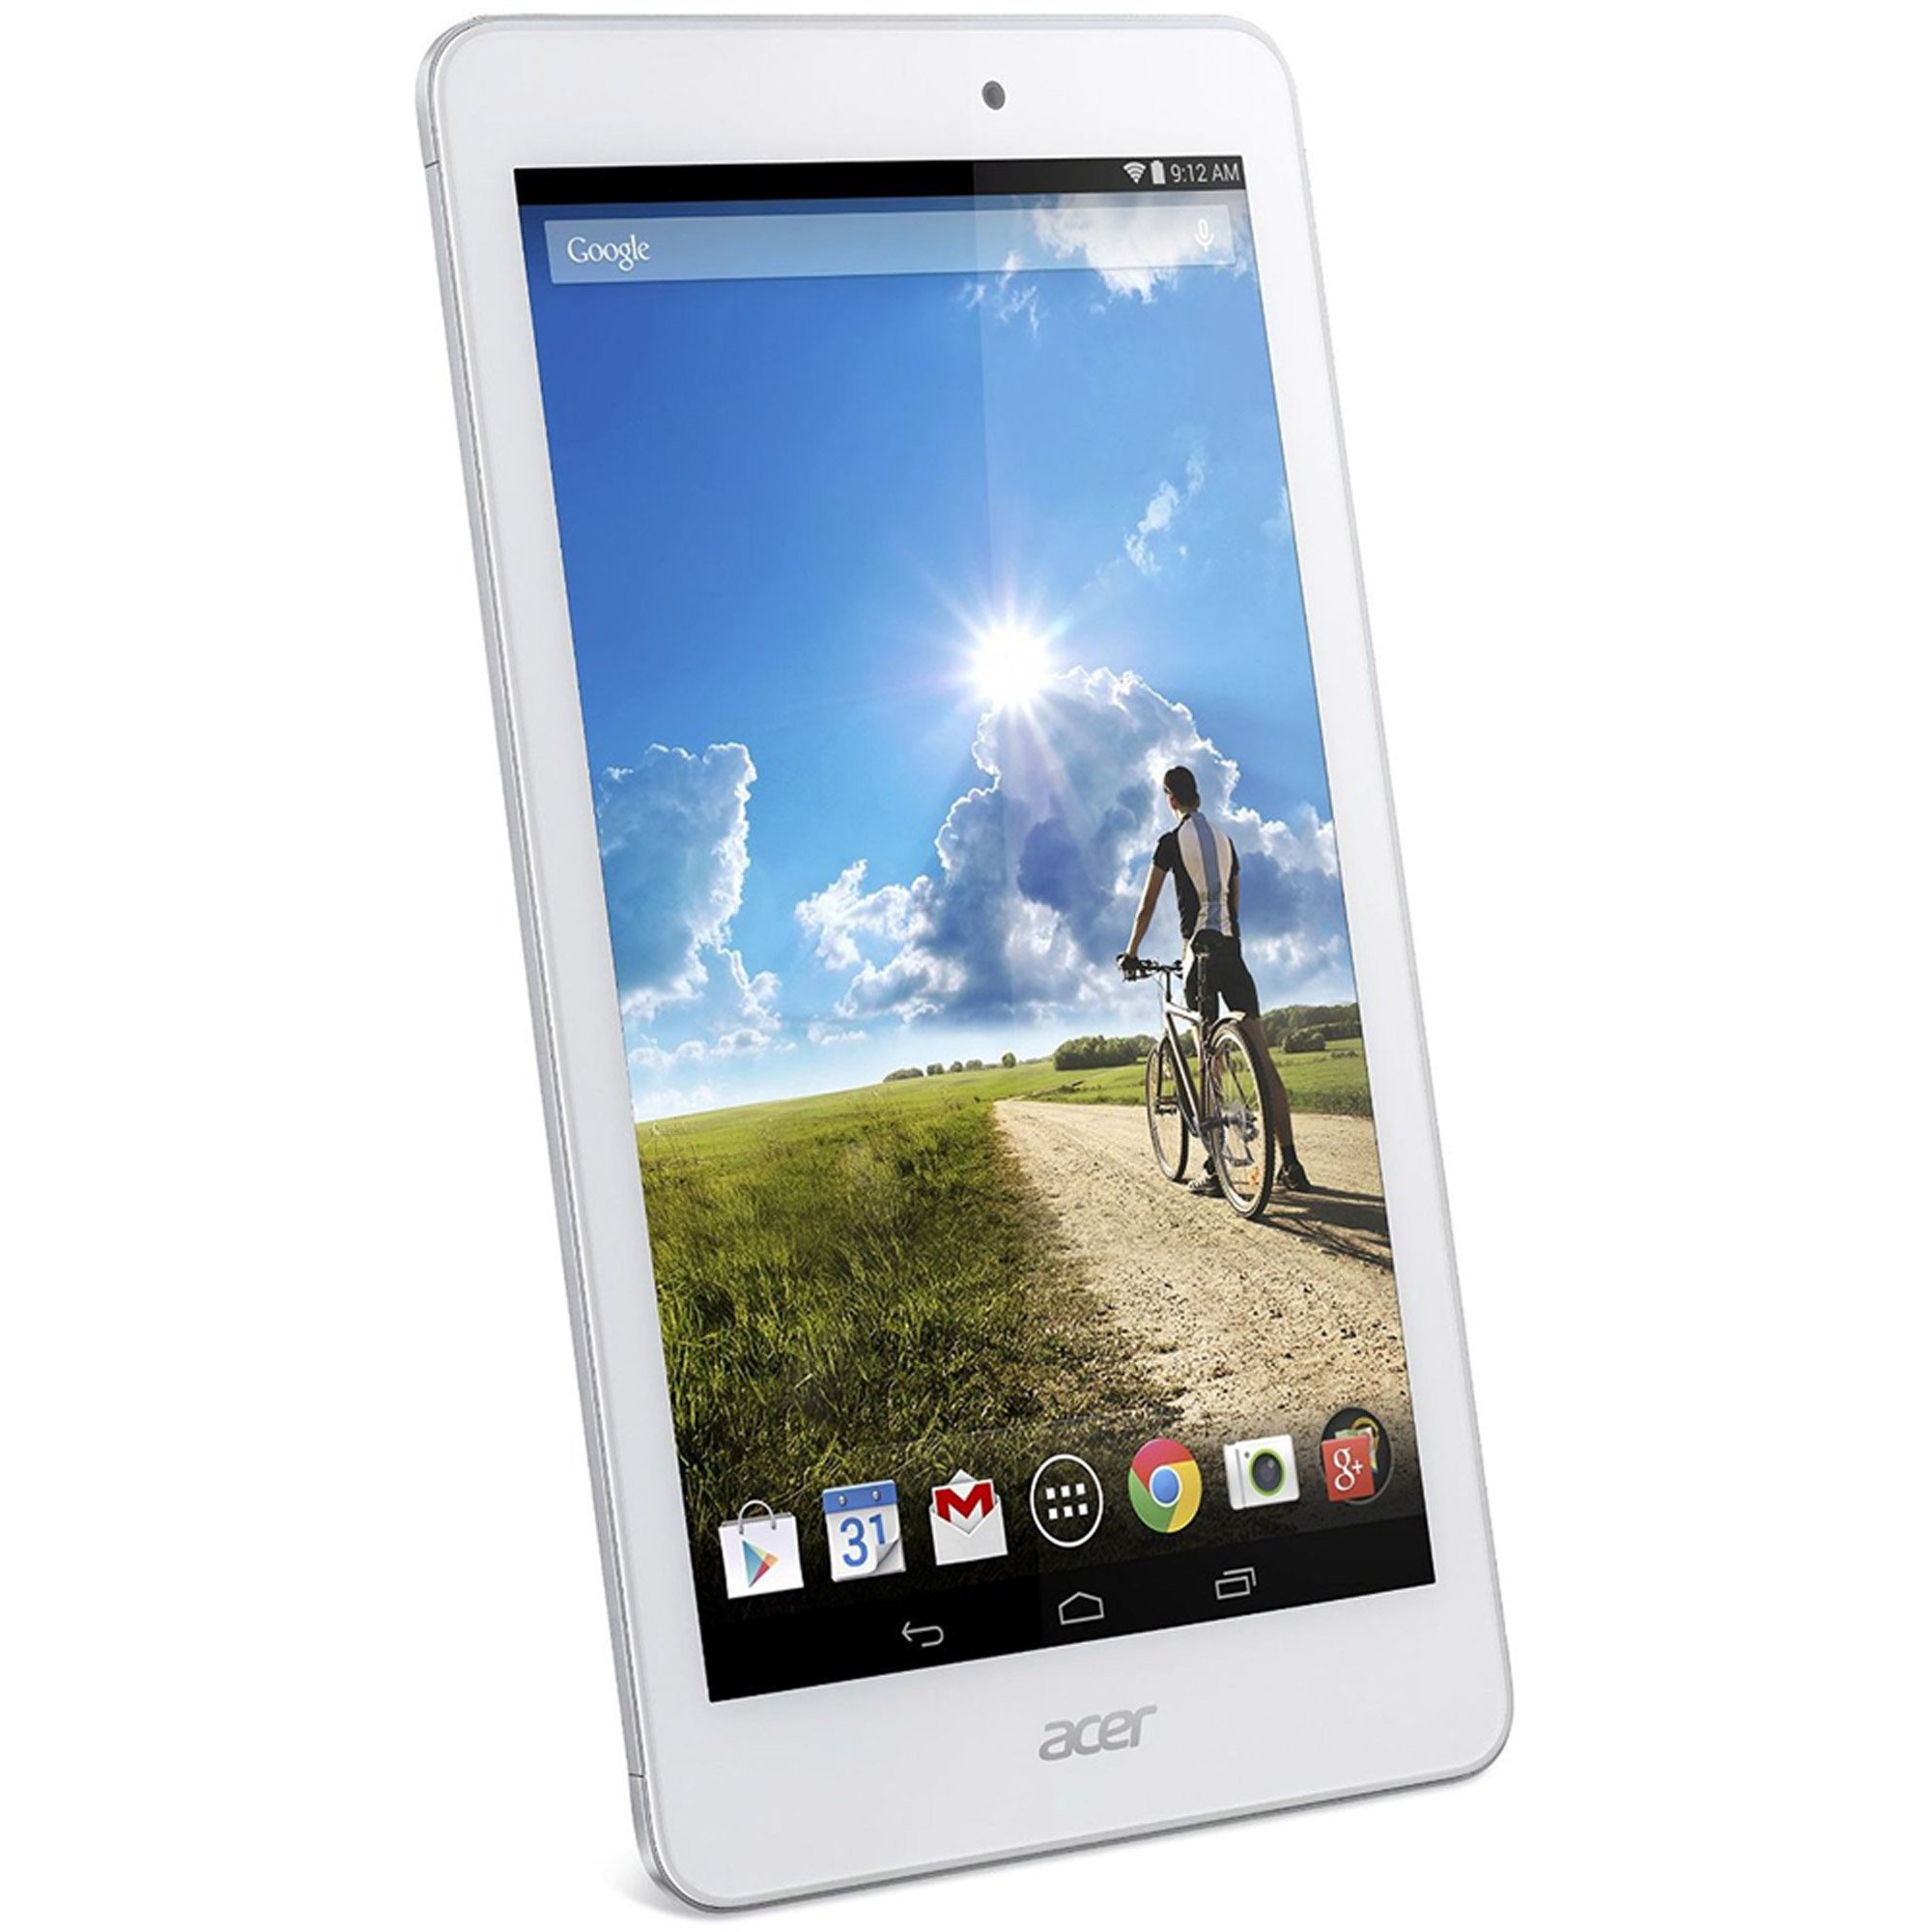 Acer Tablet 10.1'' MediaTek Cortex A35 1.30GHz 2GB Ram 16GB Flash Android7 (Certified Refurbished) by Acer